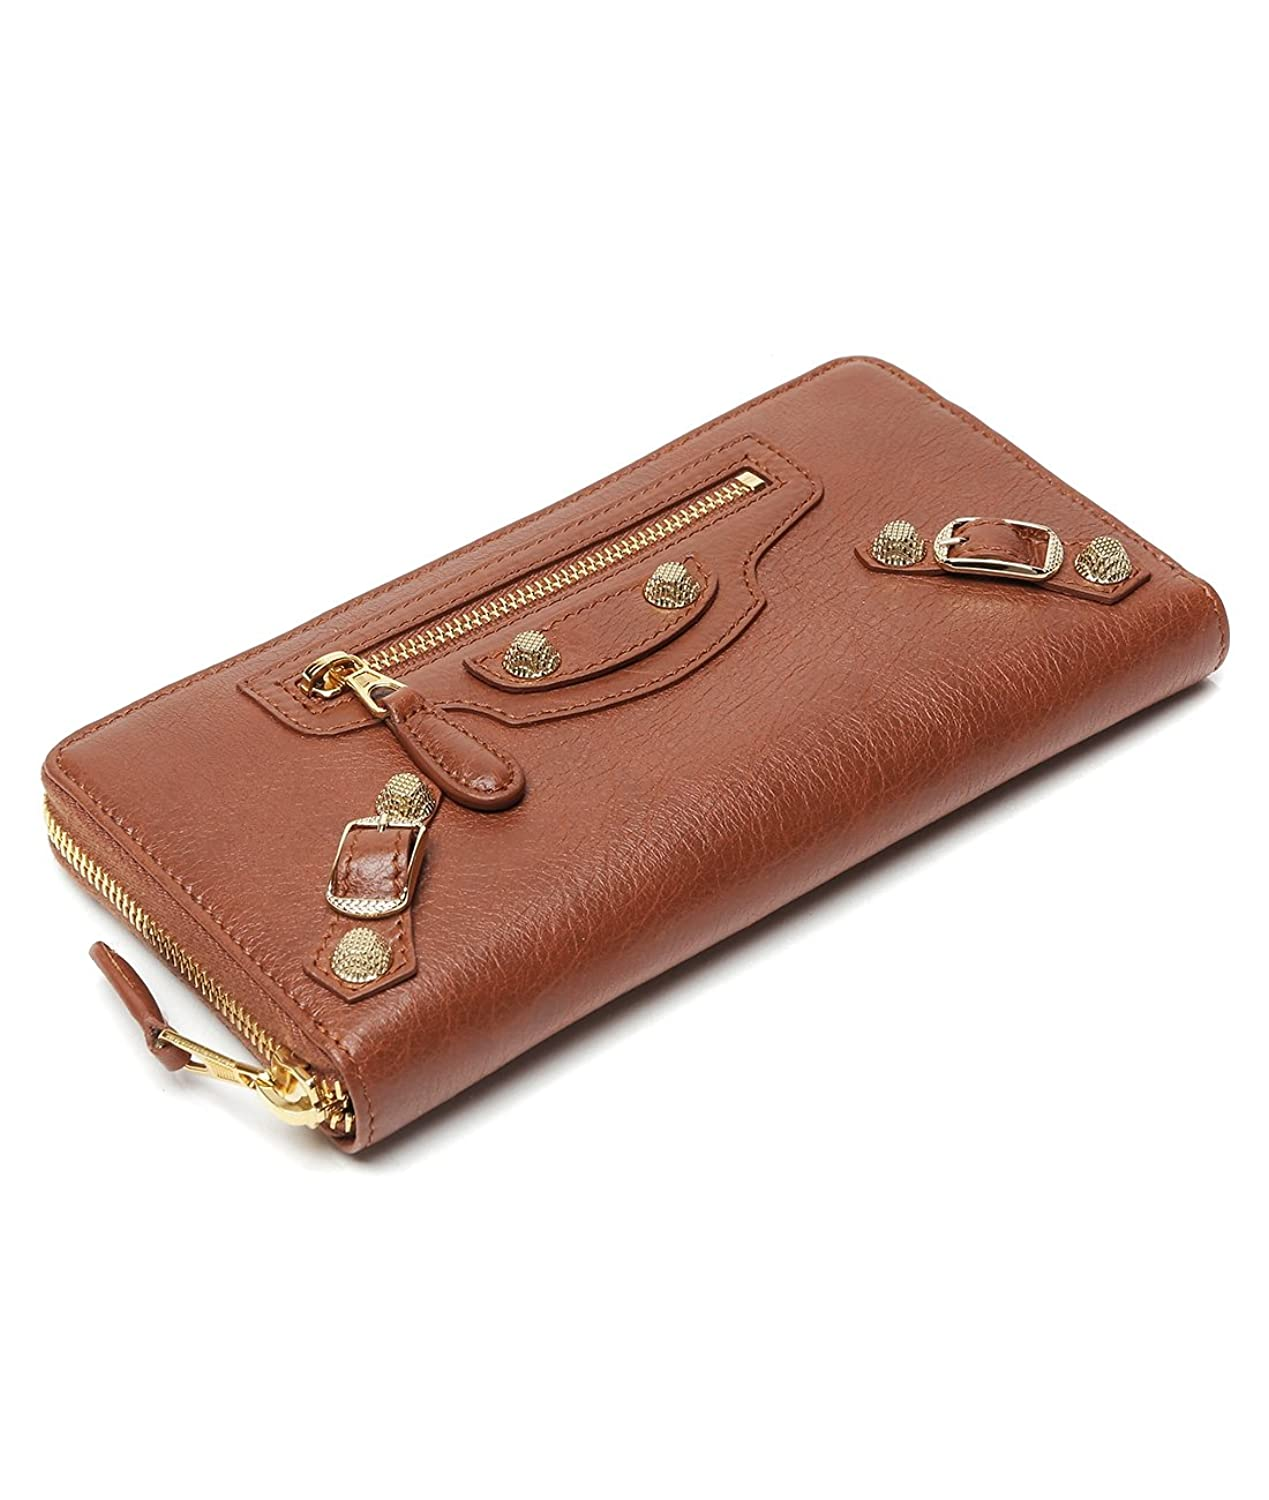 Wiberlux Balenciaga Women's Buckle Accent Zip-Around Long Real Leather Wallet